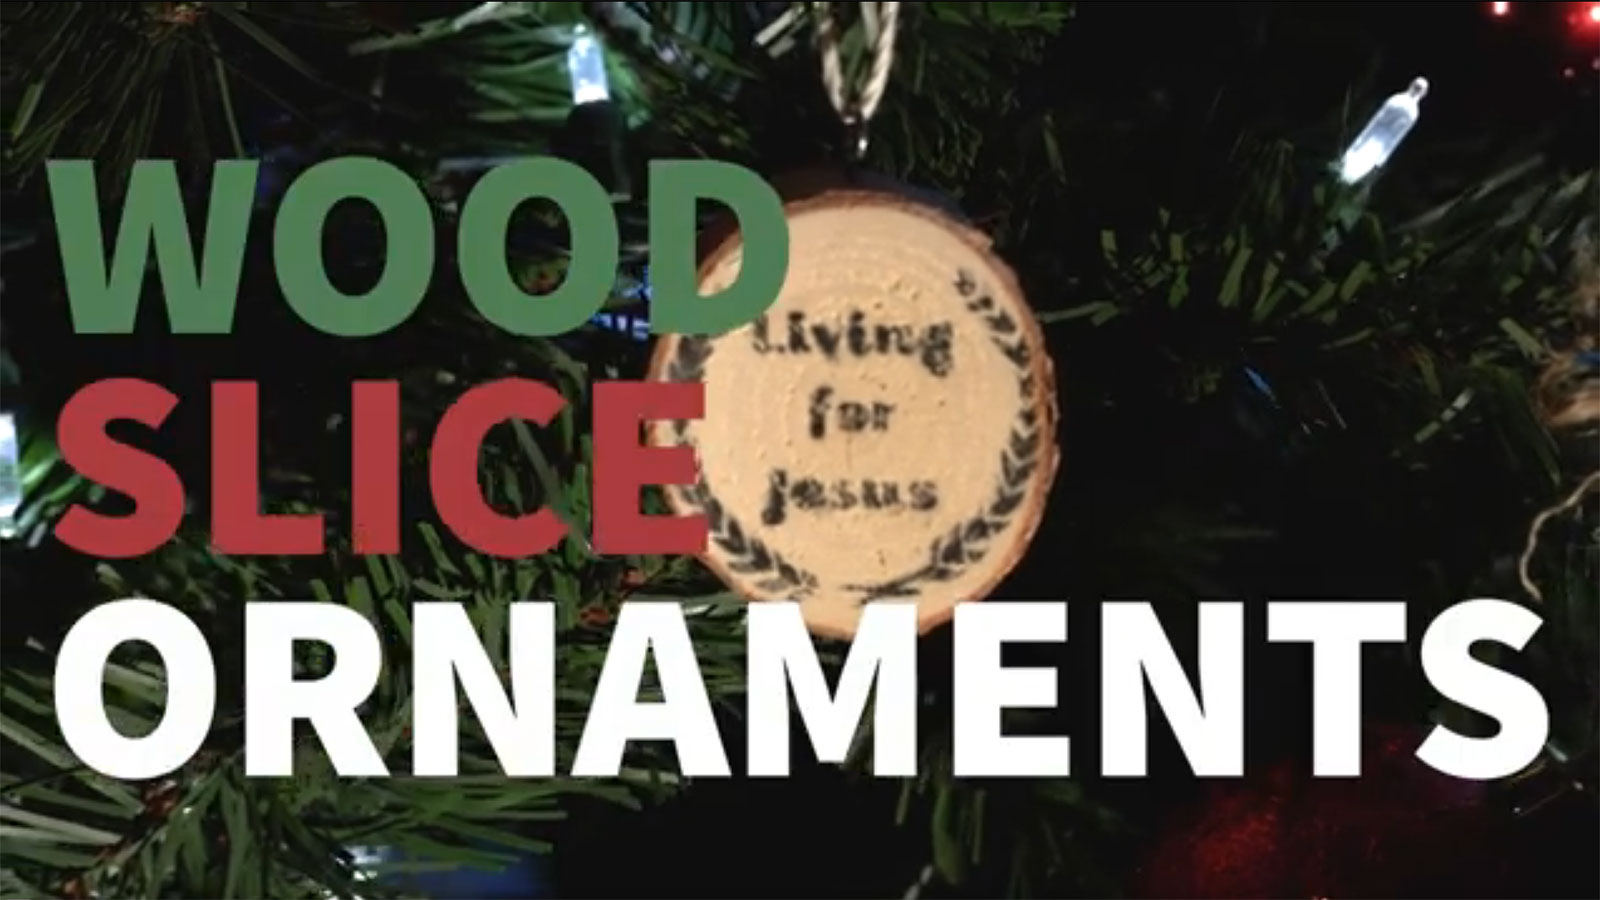 wood-slice-ornaments-feat